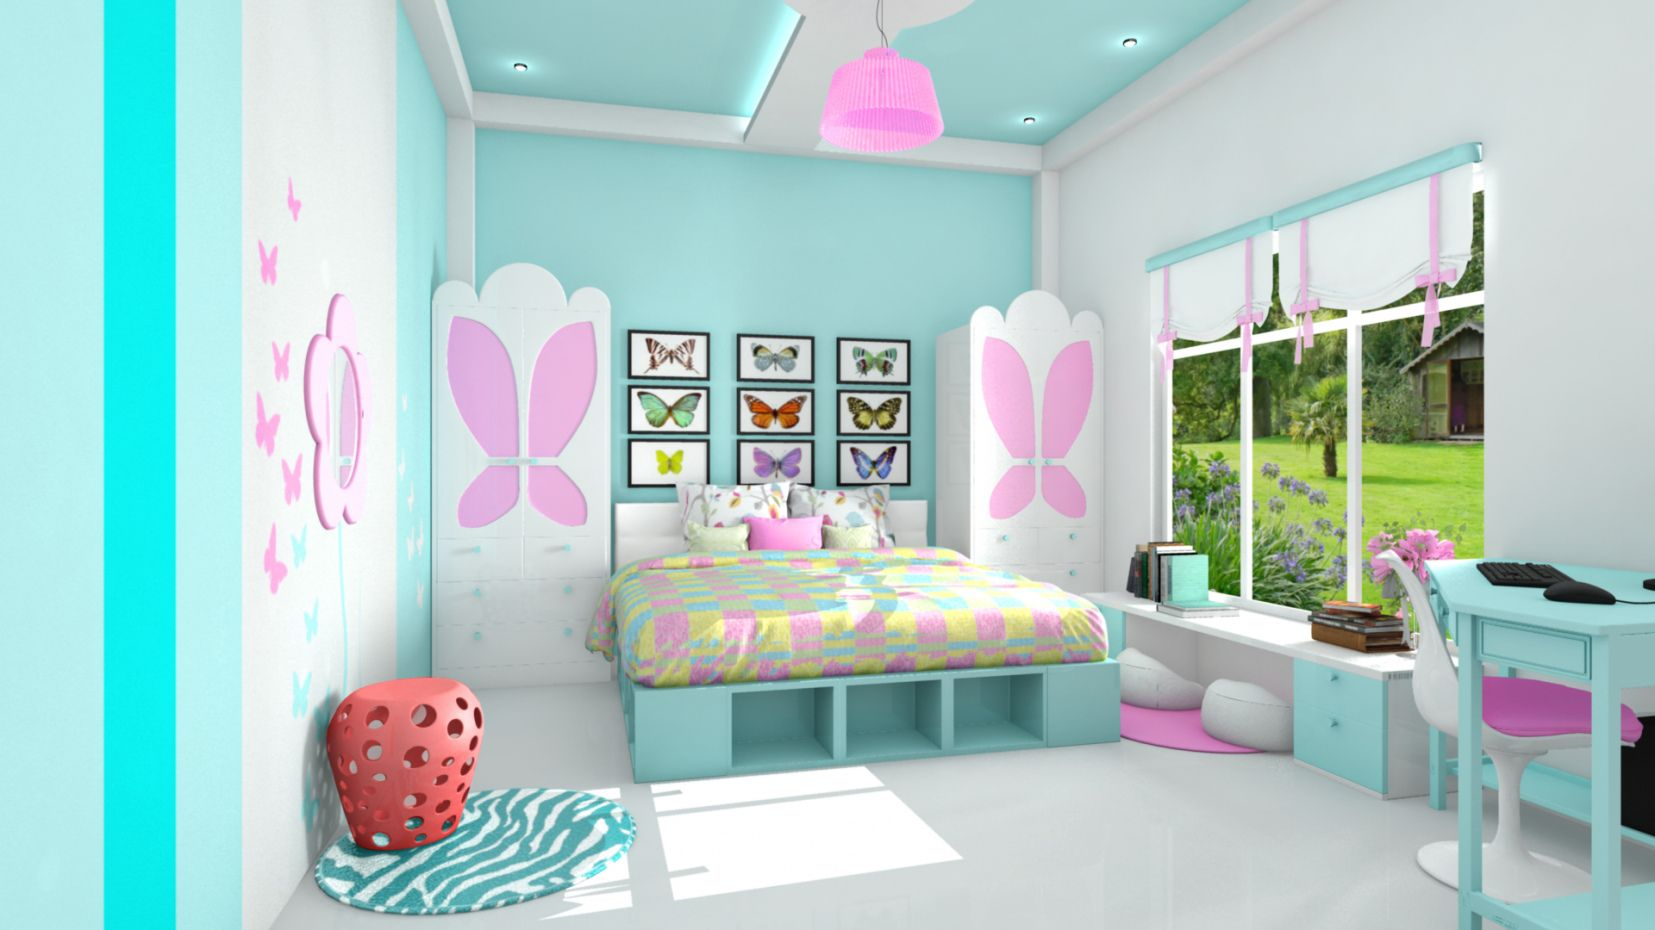 20+ Room Decor For 10 Year Old Girls   Bedroom Decorating Ideas On A Budget